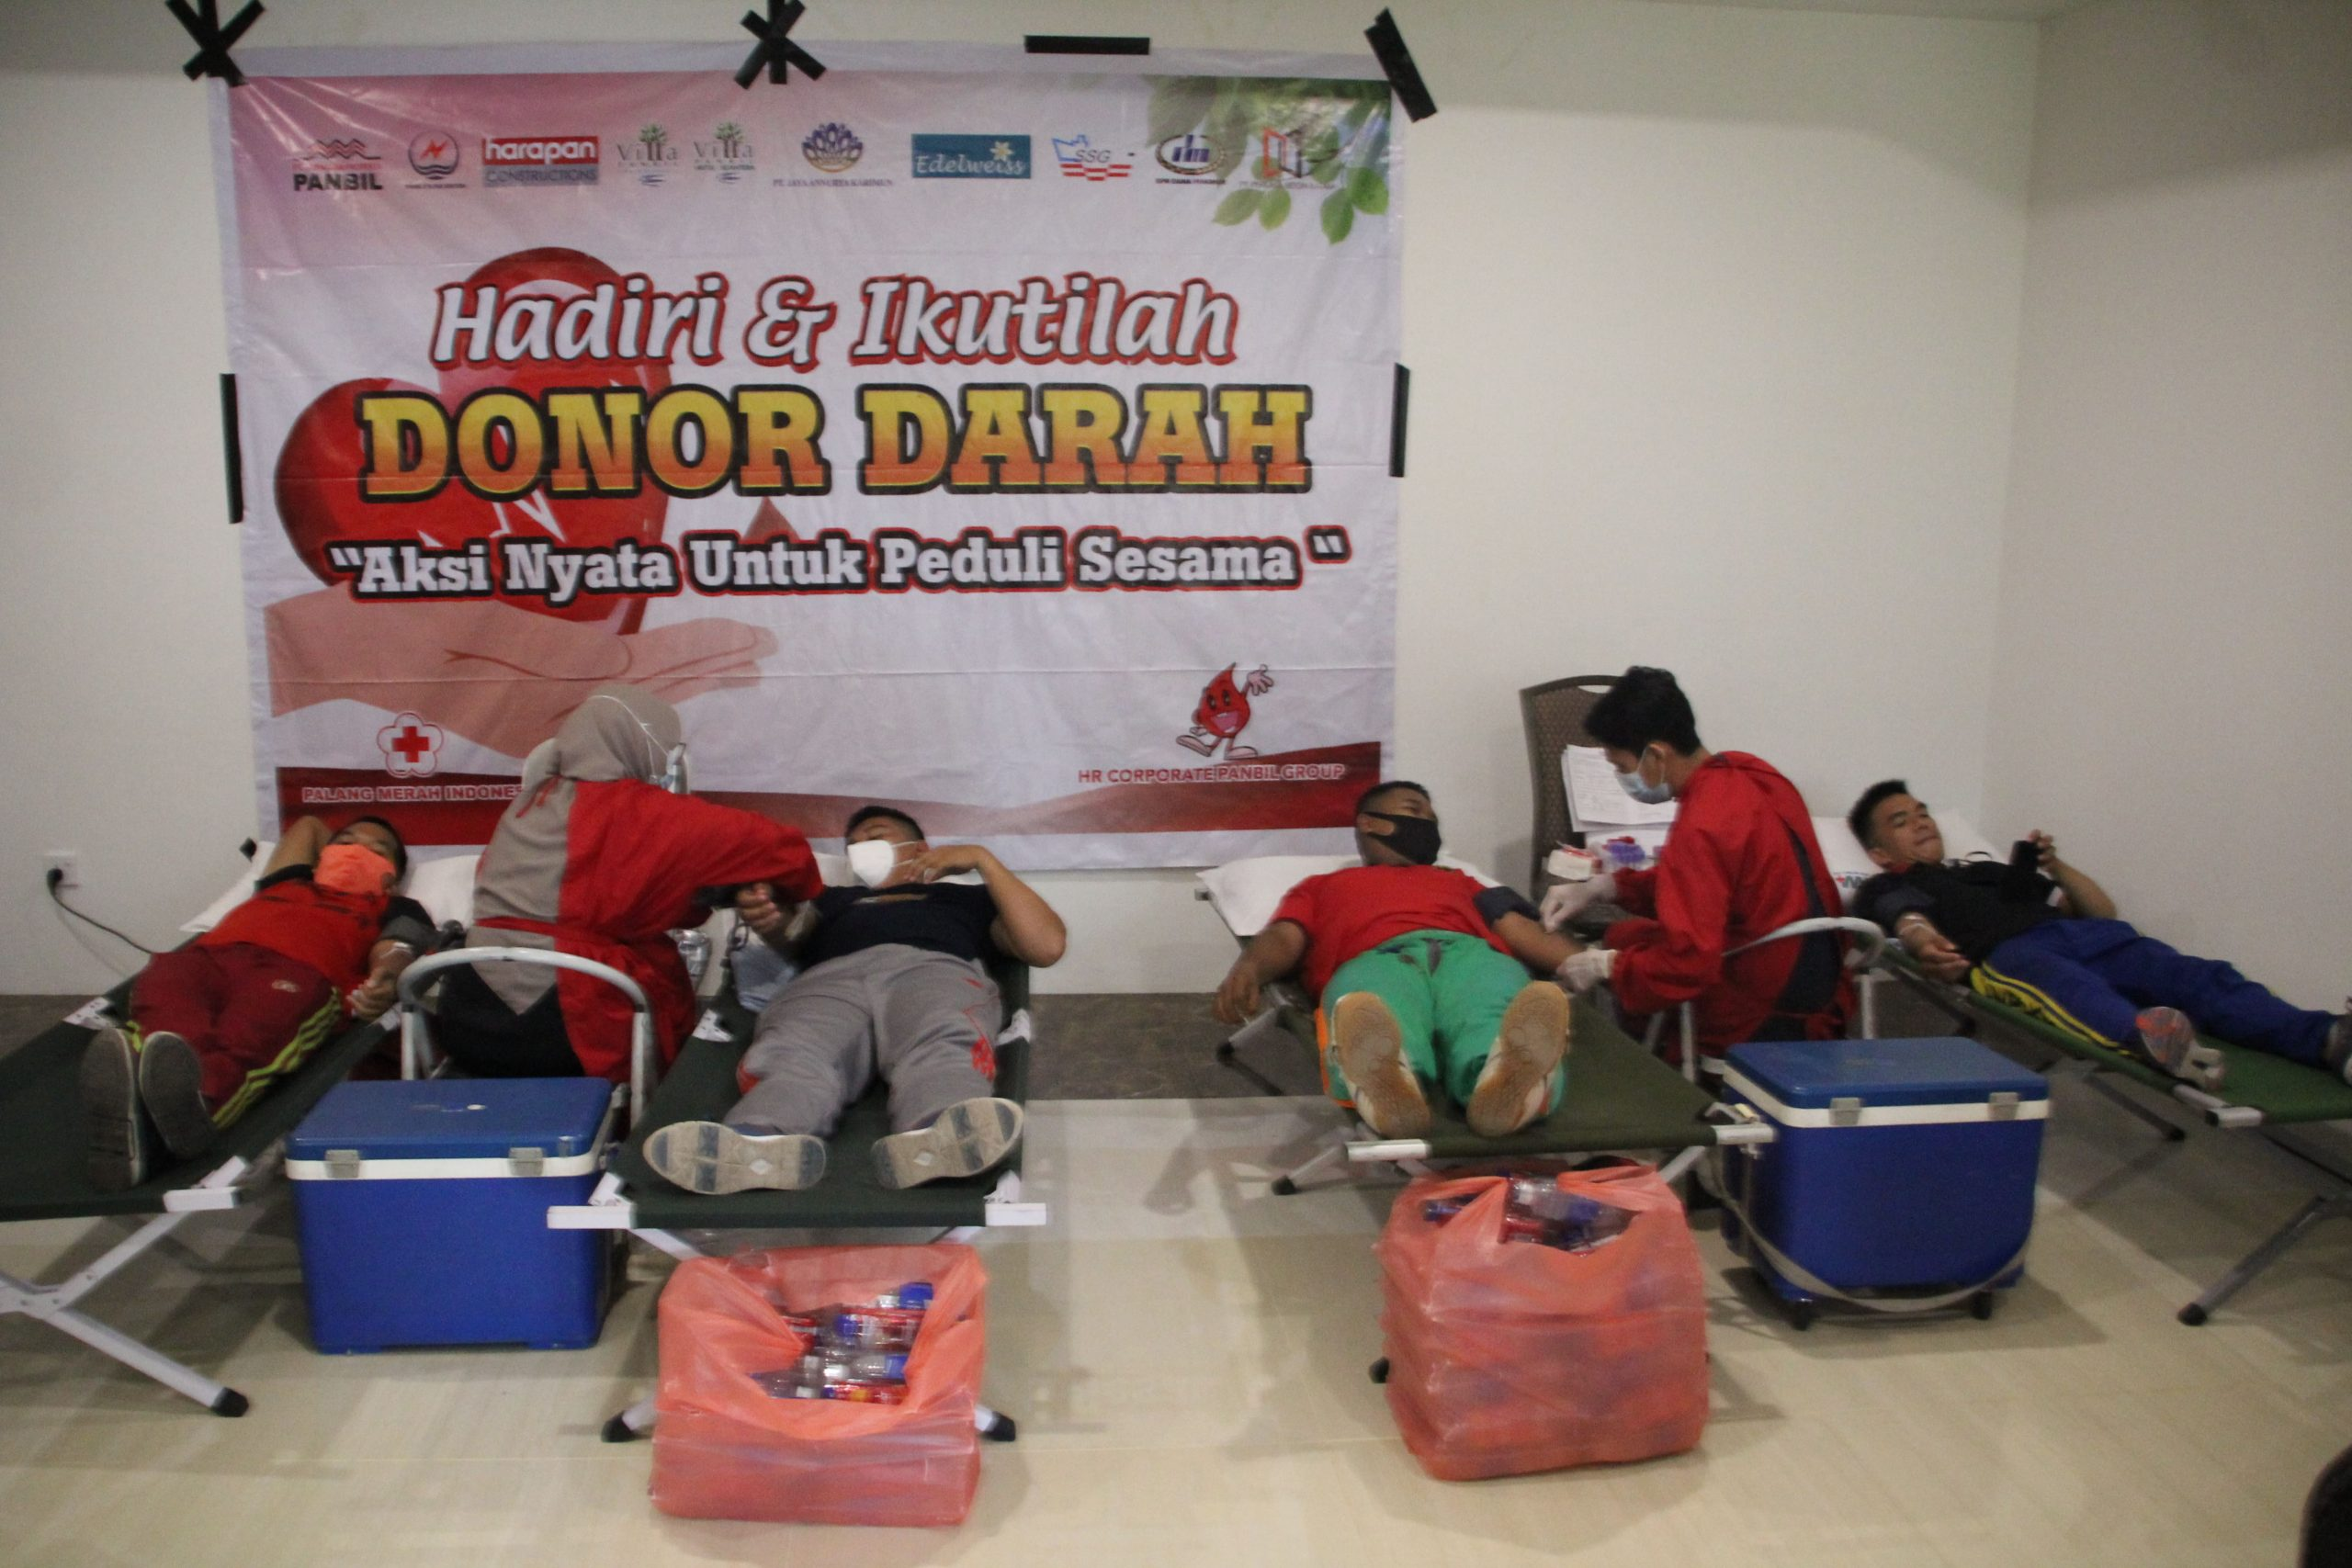 GIVE BLOOD, SAVE LIFE WITH PANBIL GROUP